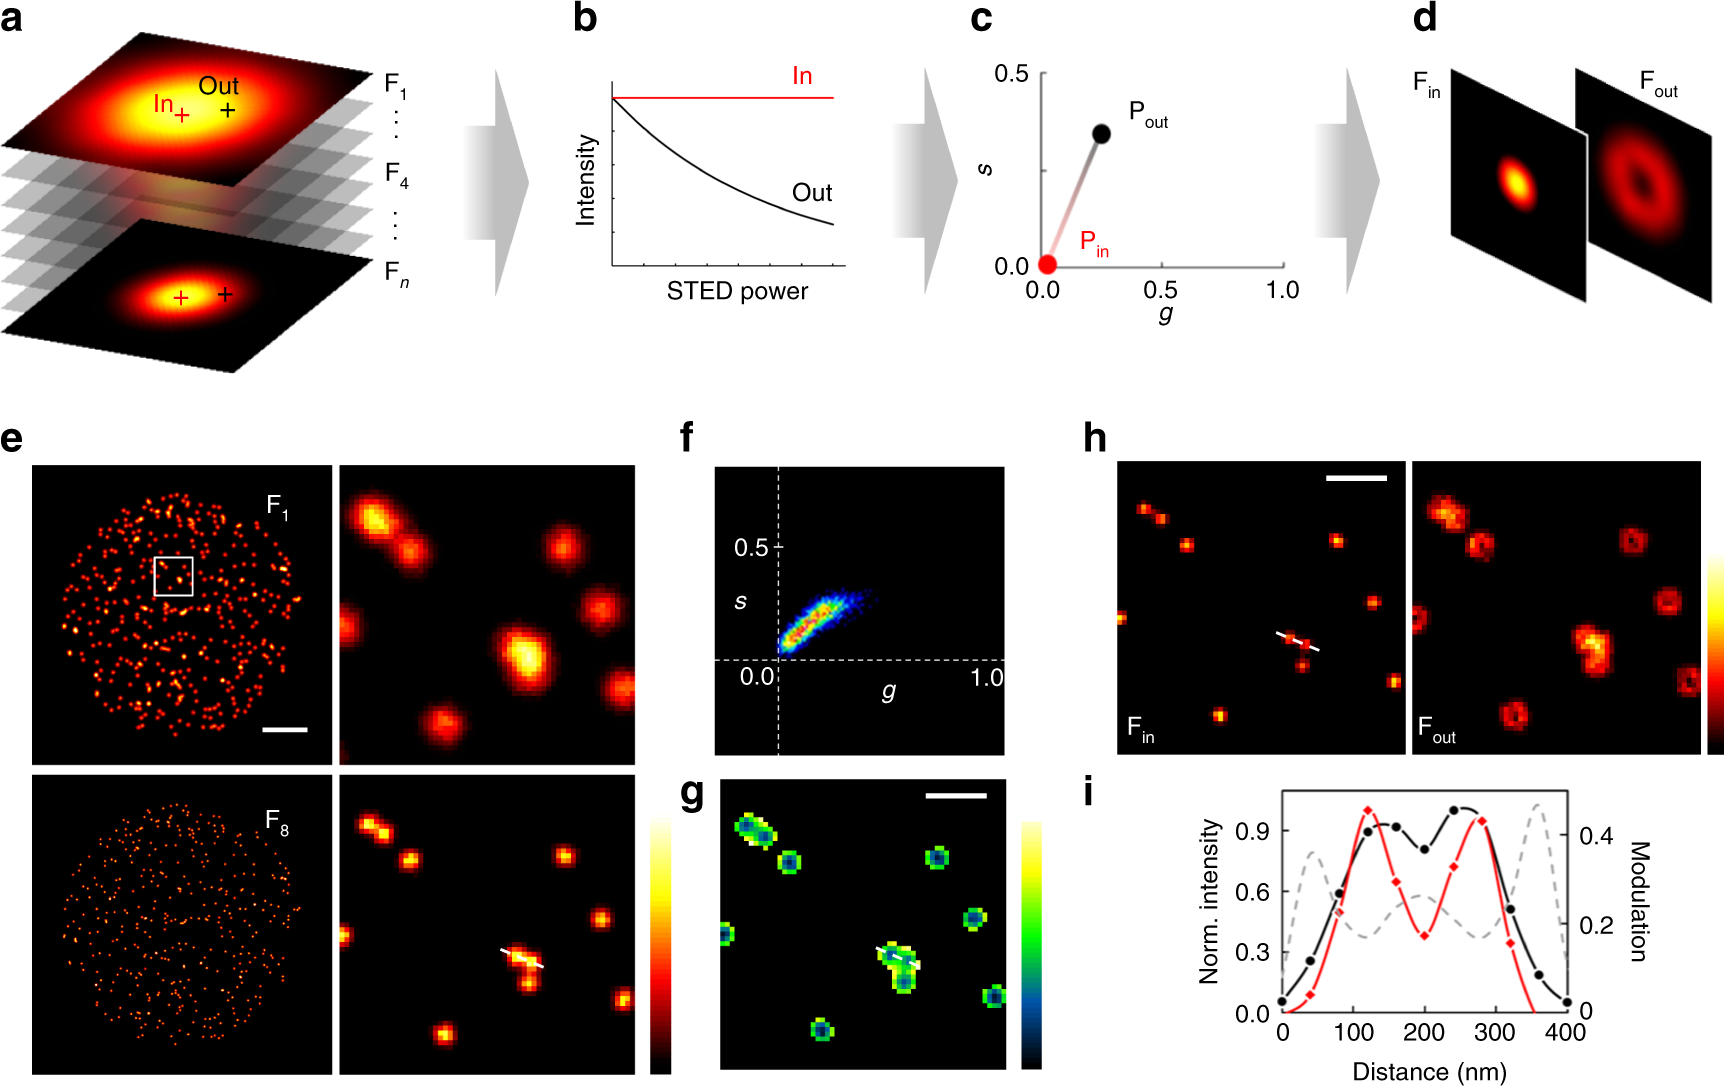 Exploiting The Tunability Of Stimulated Emission Depletion August 19 2016 Version 20142 Microscopy For Super Resolution Imaging Nuclear Structures Nature Communications